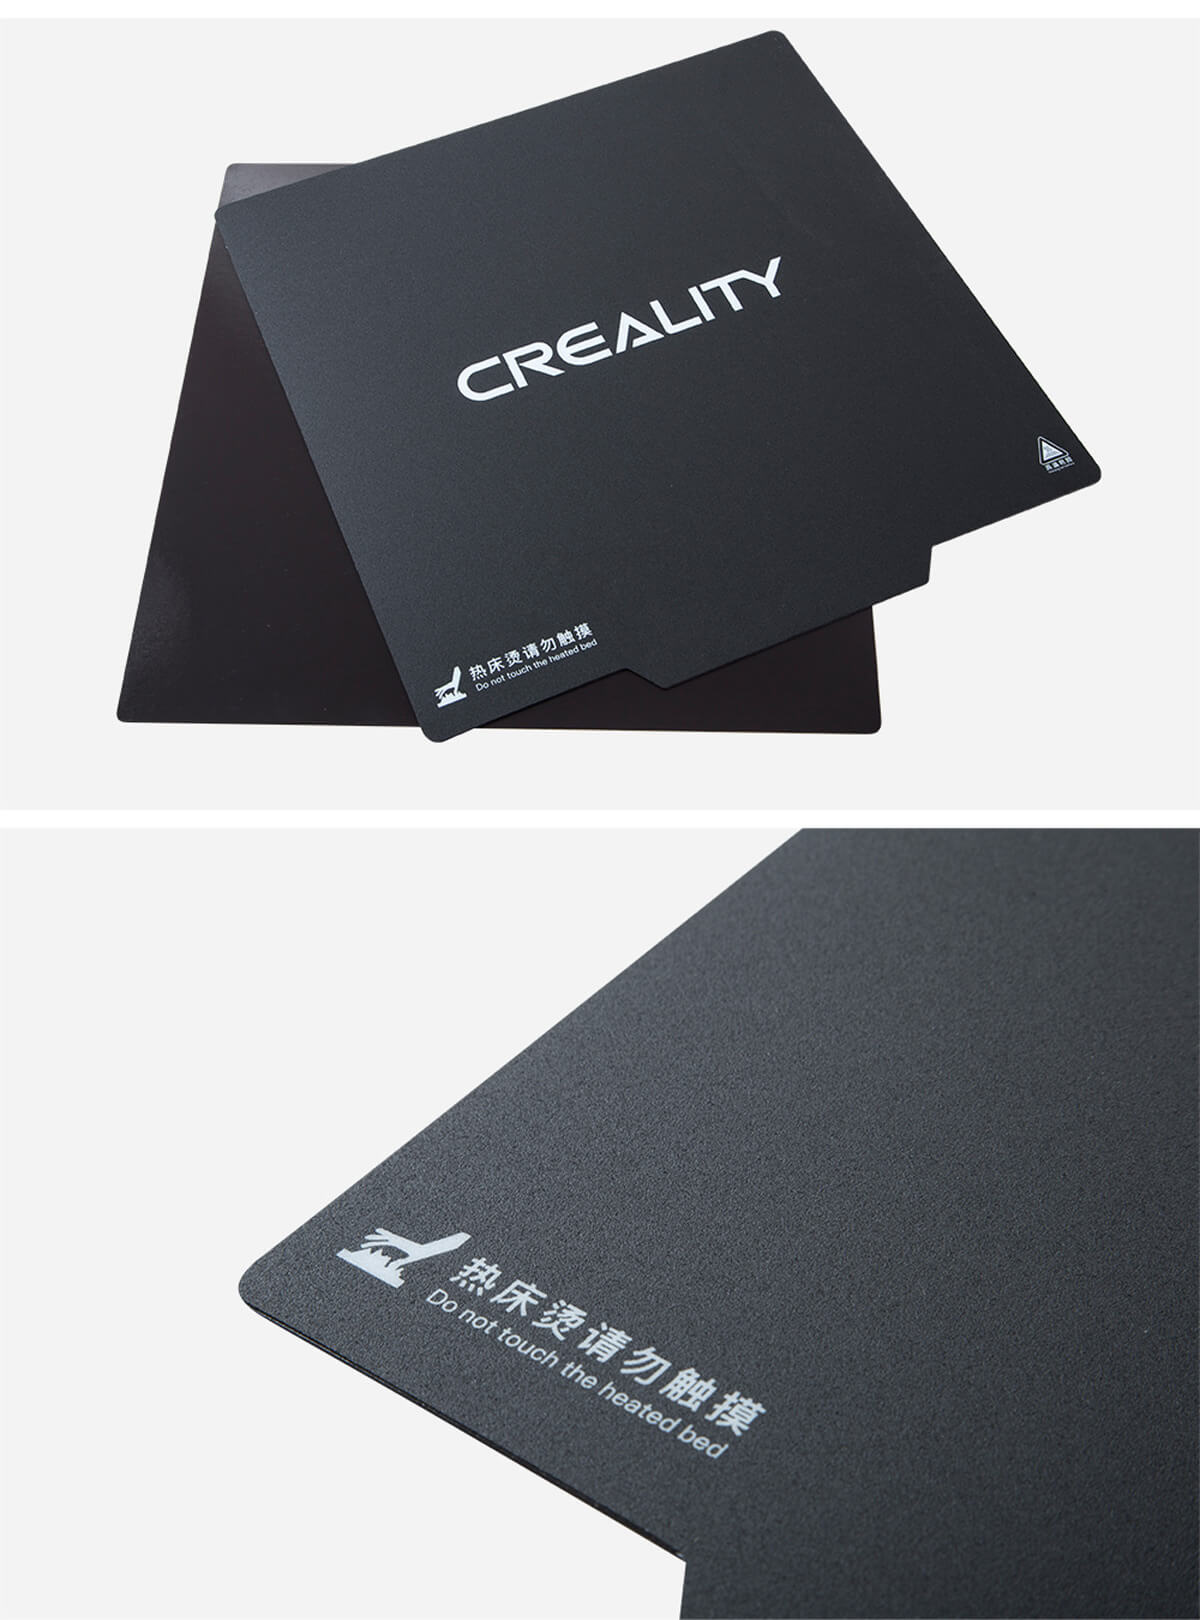 creality-3d-printer-Ender-3-Cmagnet-Sticker-(with side)-12